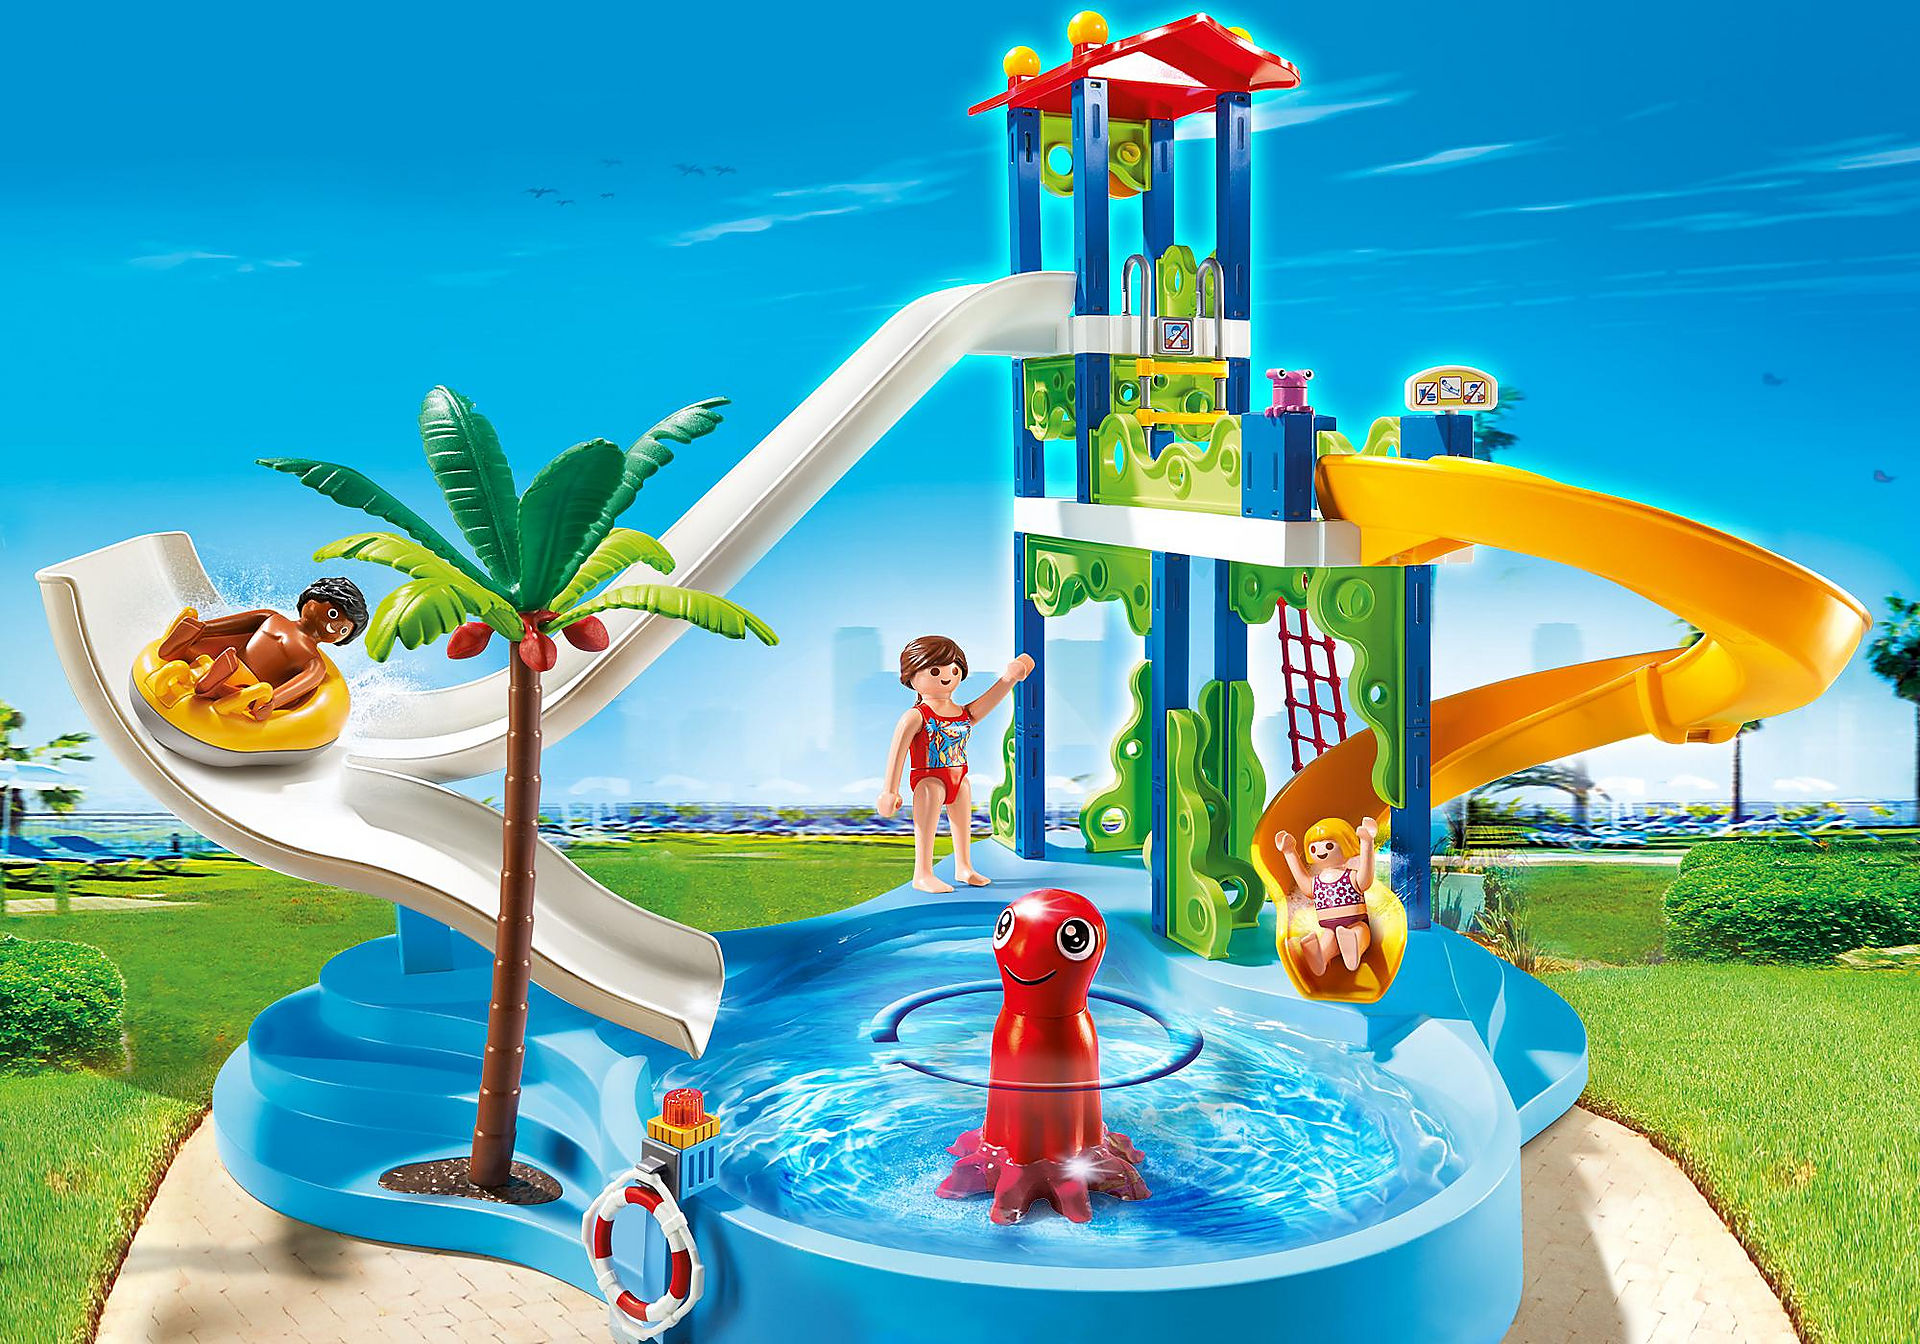 http://media.playmobil.com/i/playmobil/6669_product_detail/Waterpretpark met glijbanen